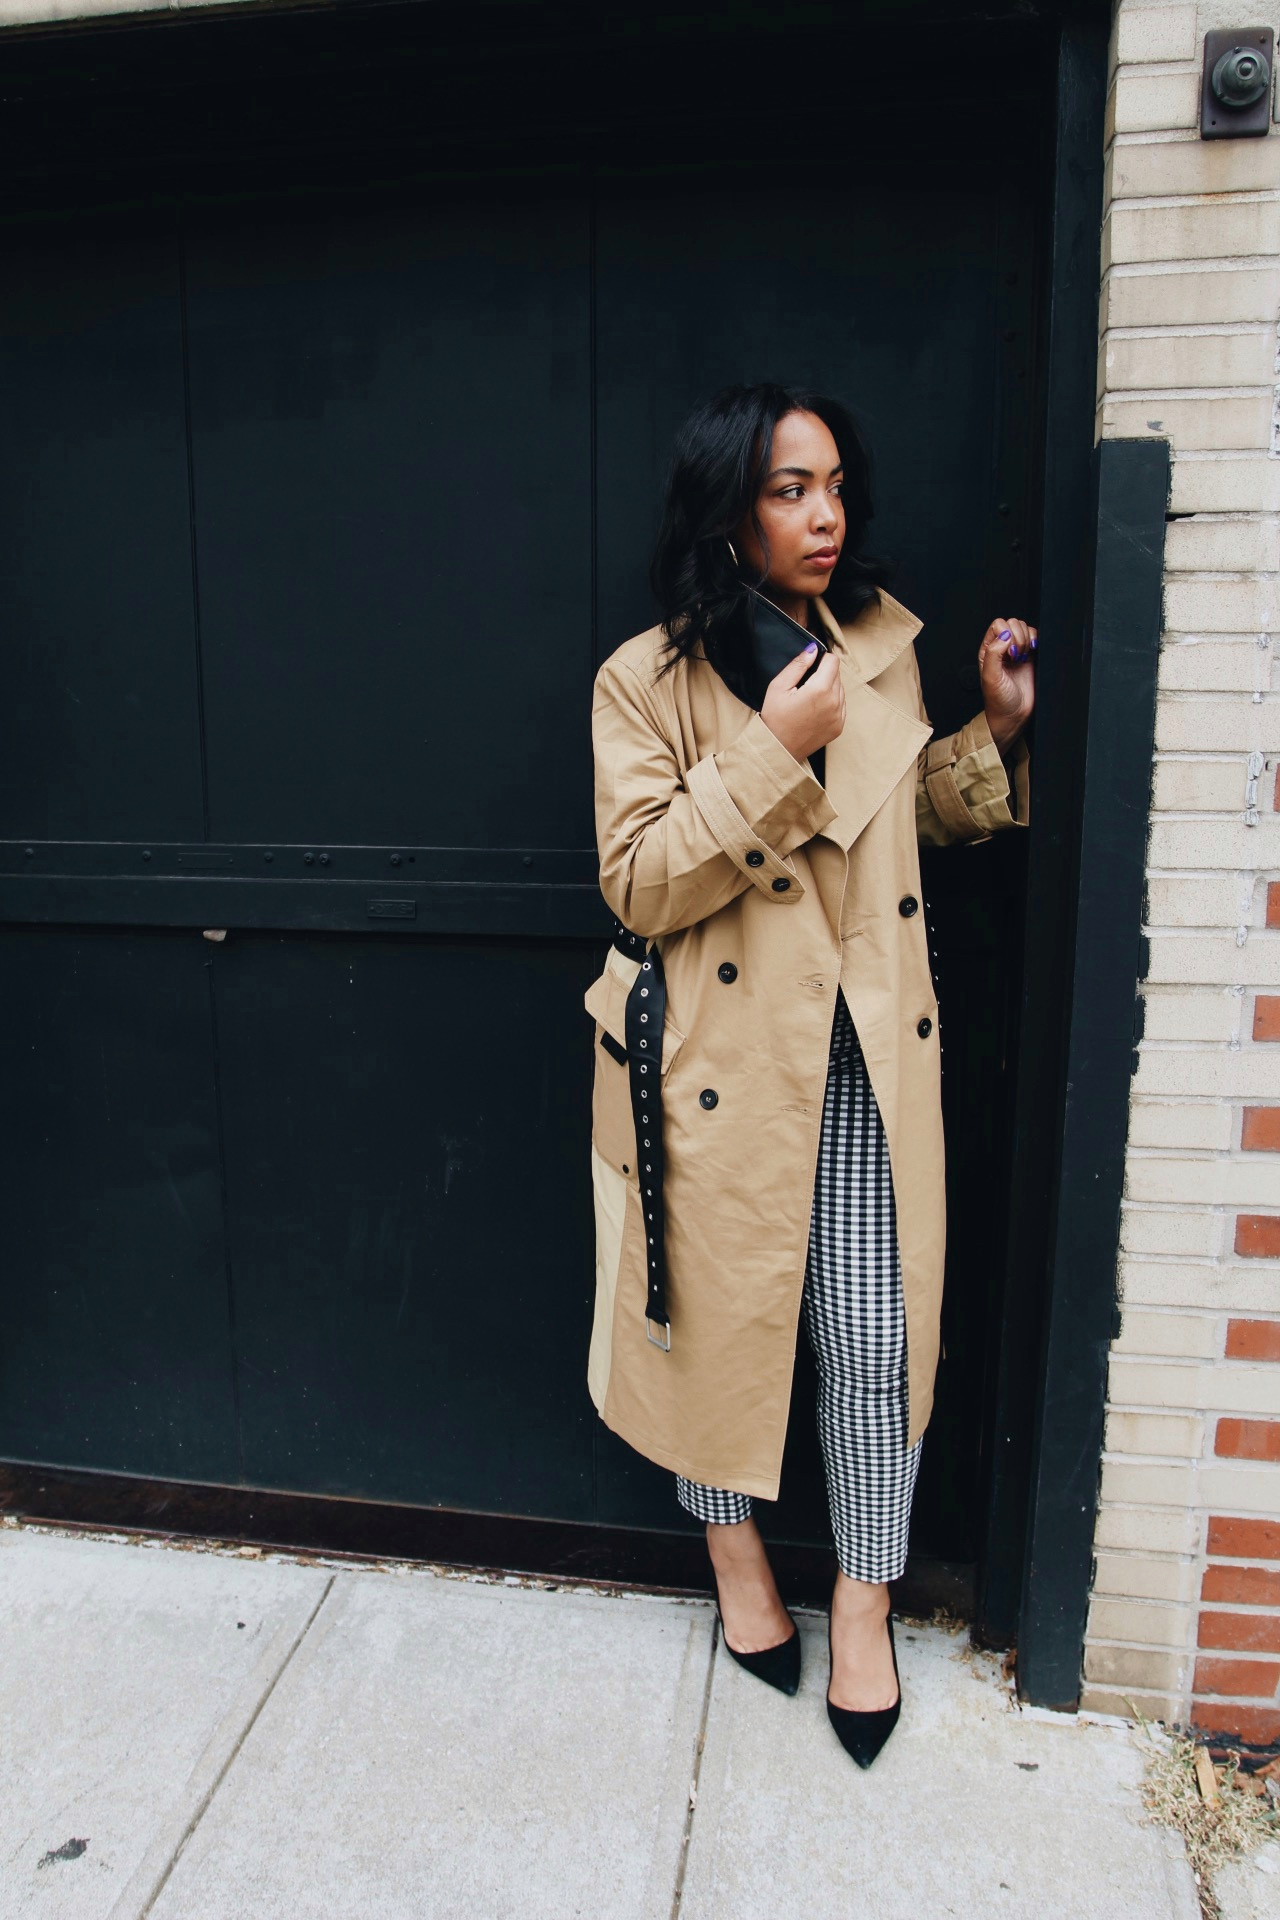 Walmart-fashion-avec-les-filles-lord-and-taylor-trench-gingham-fall-style-10.jpg